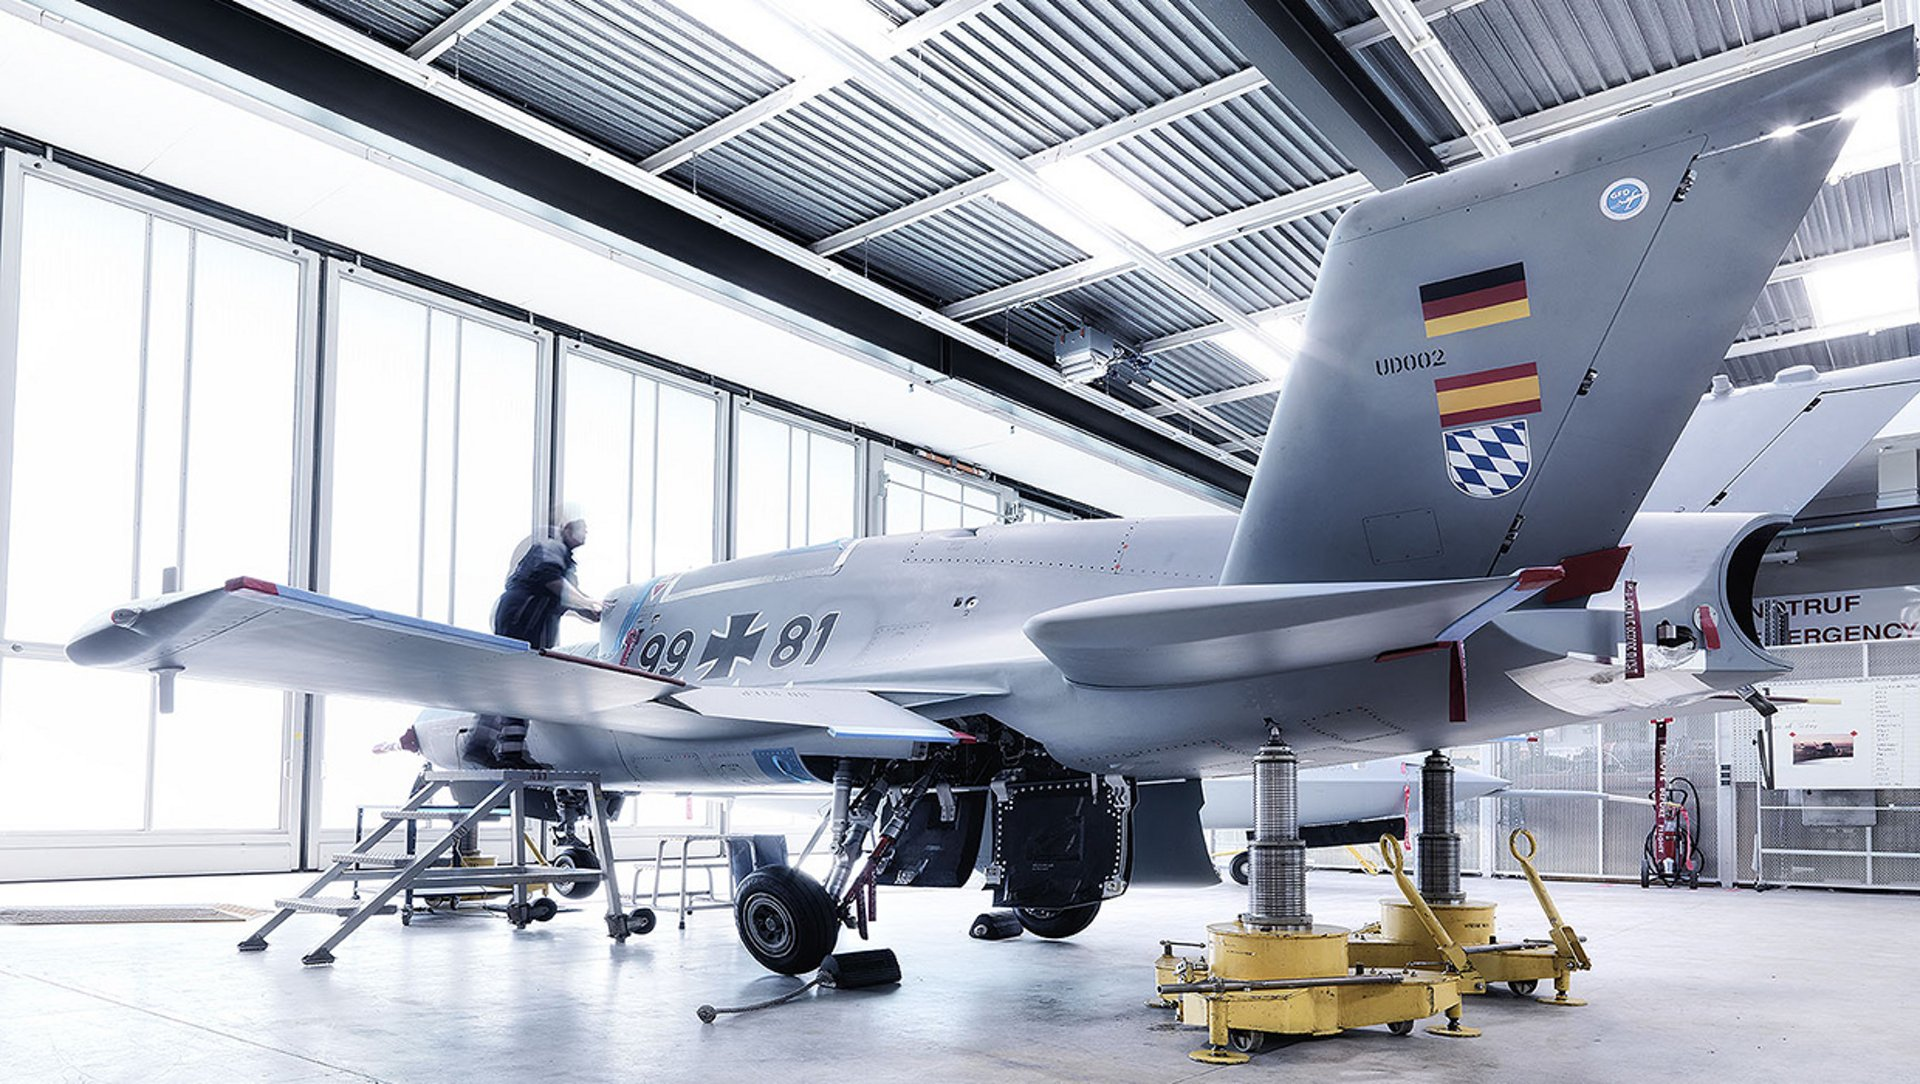 Airbus' Barracuda unmanned combat air vehicle technology demonstrator enabled a wide range of mission profiles, systems and sensors to be flight tested.